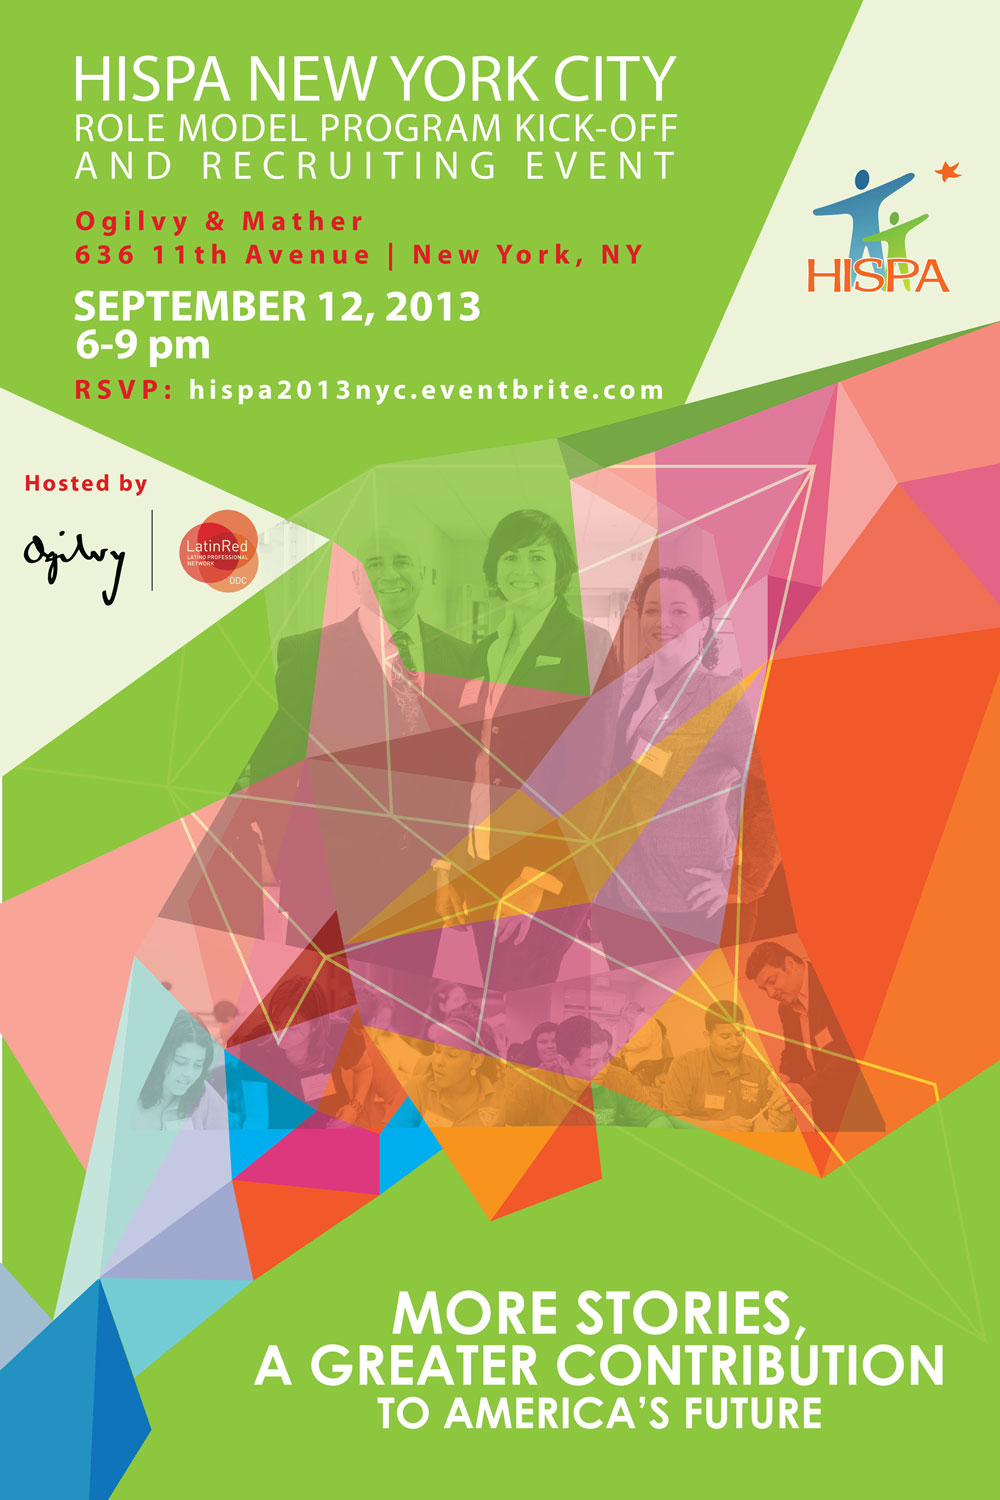 HISPA NYC Kick-Off and Recruiting Event, September 12, 2013